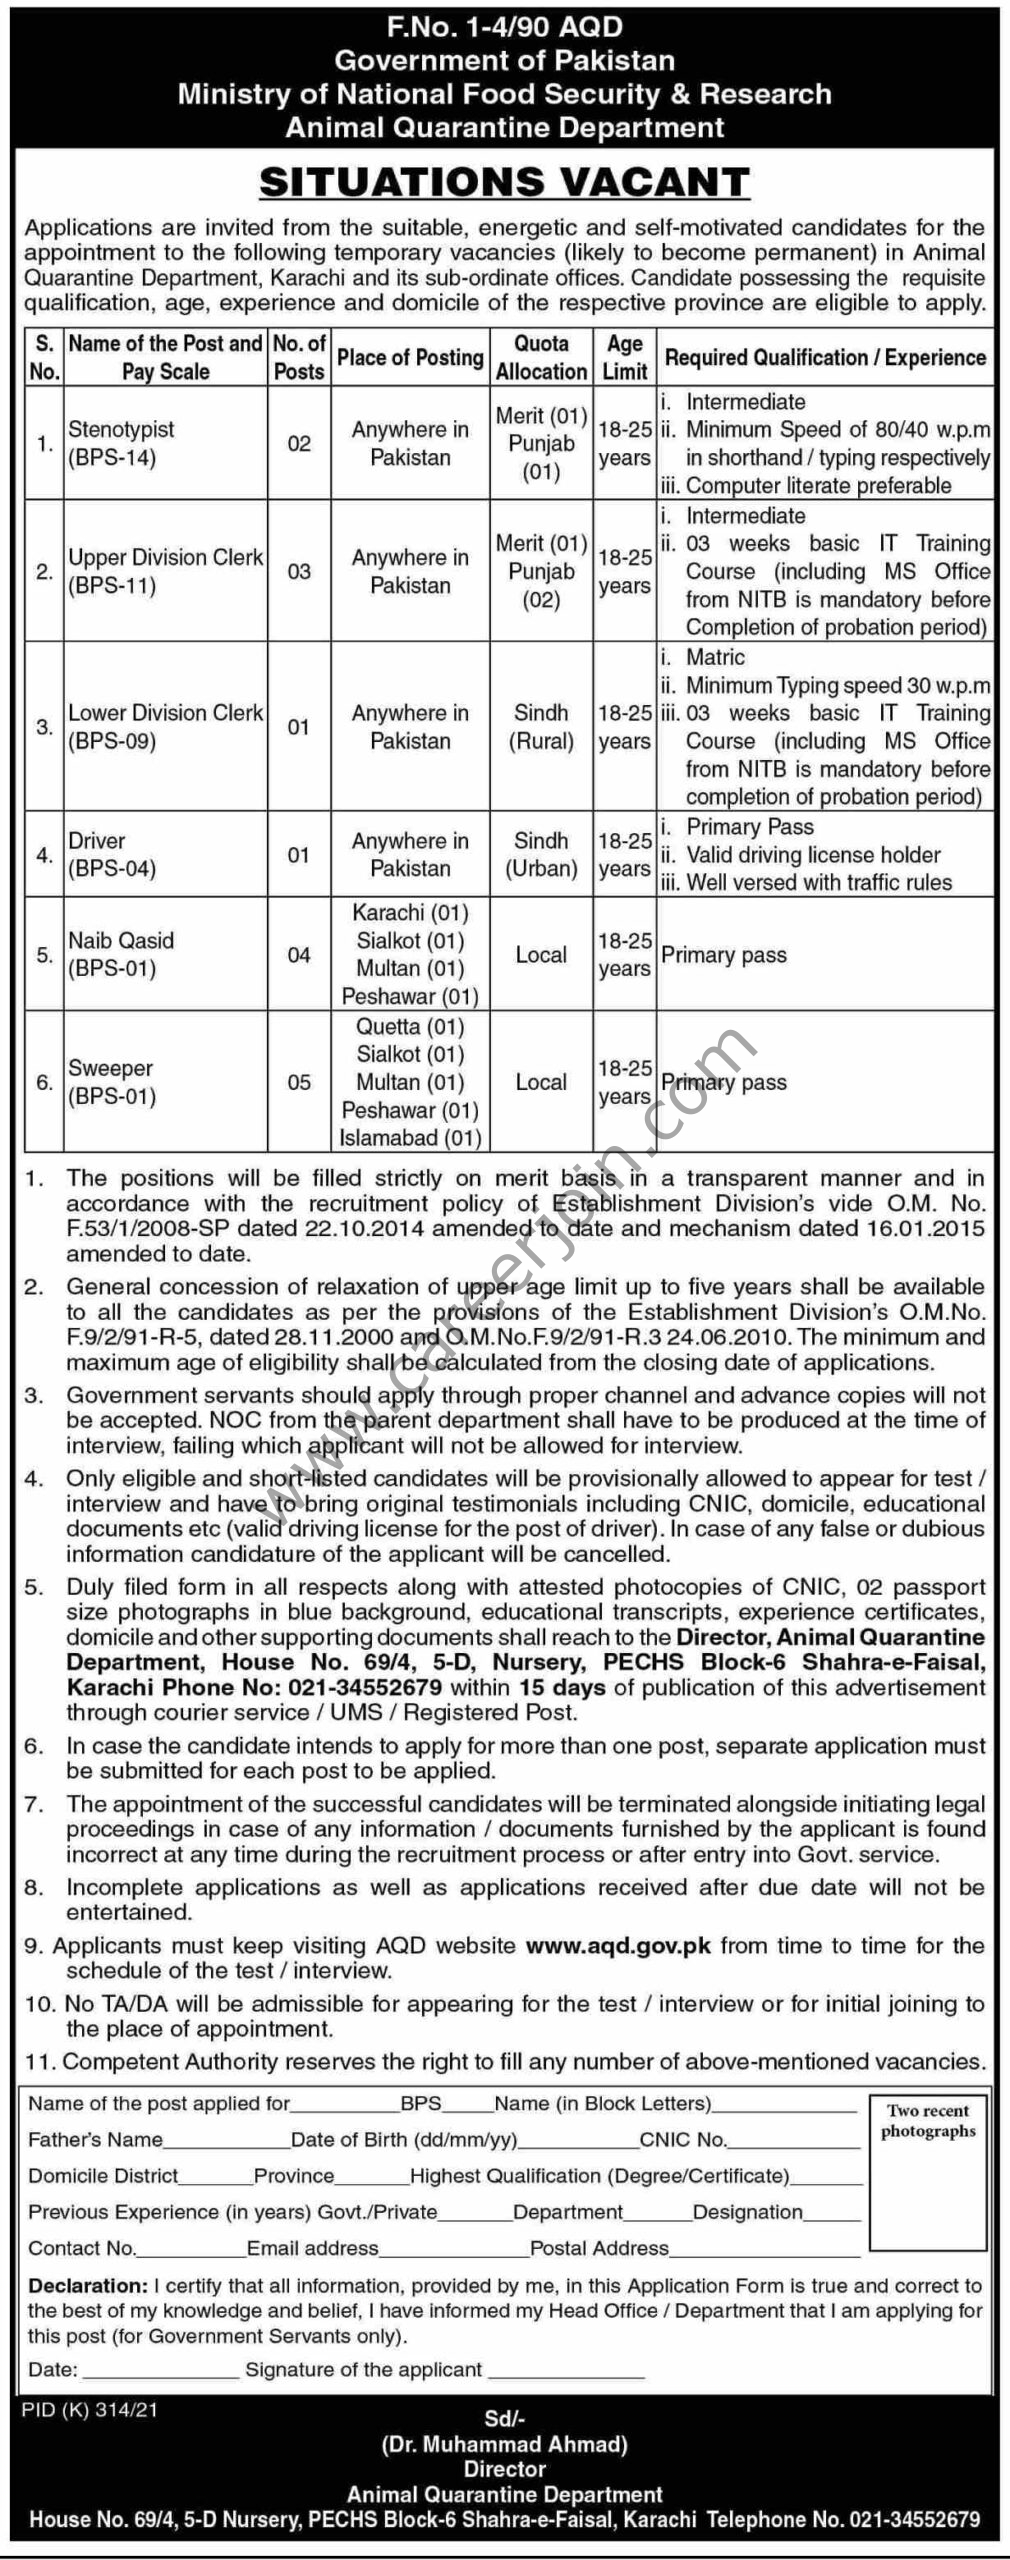 Ministry Of National Food Security & Research Jobs August 2021